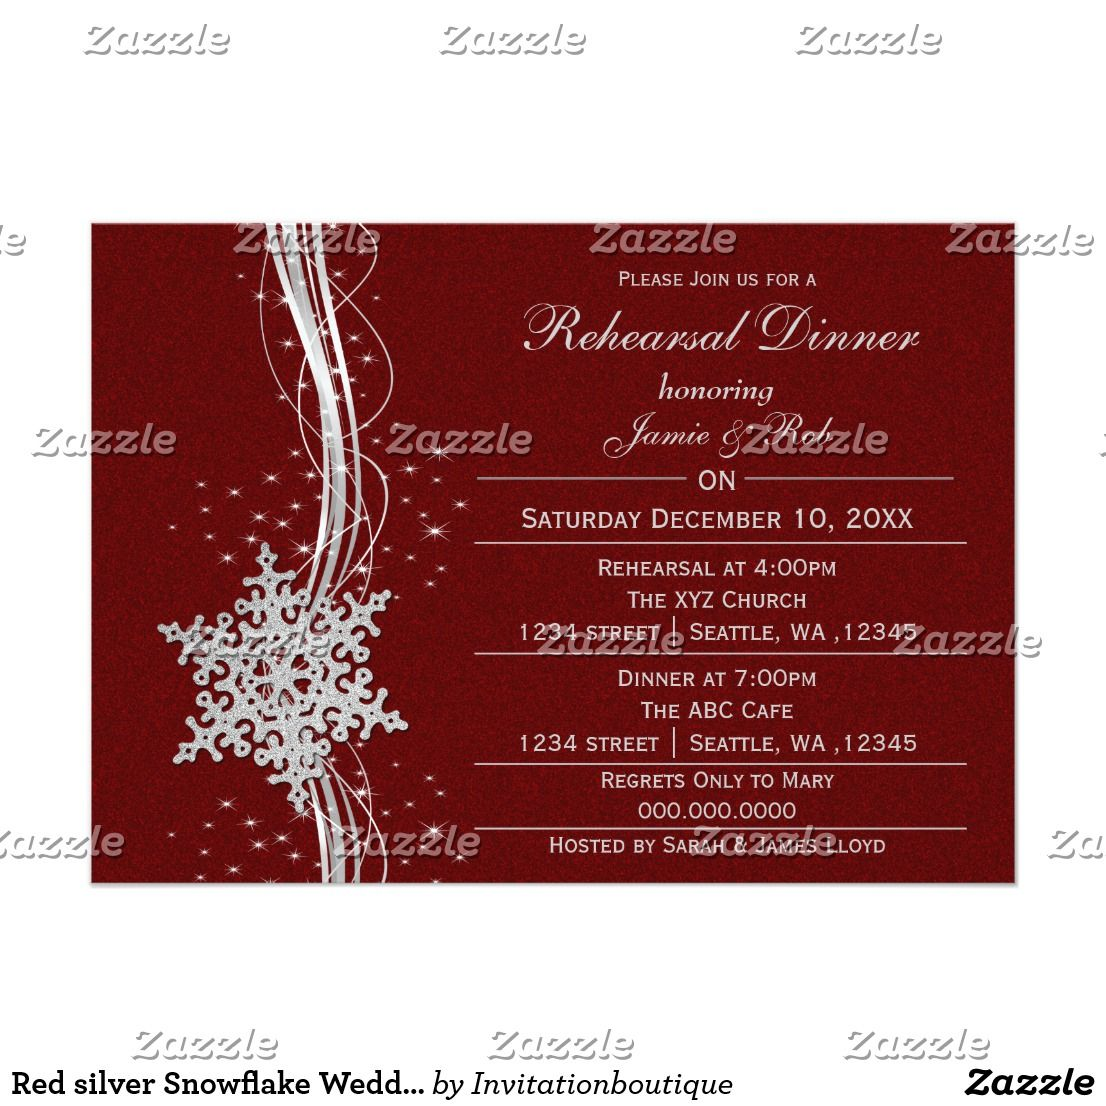 Red silver Snowflake Wedding Rehearsal Invites Red silver Snowflakes ...